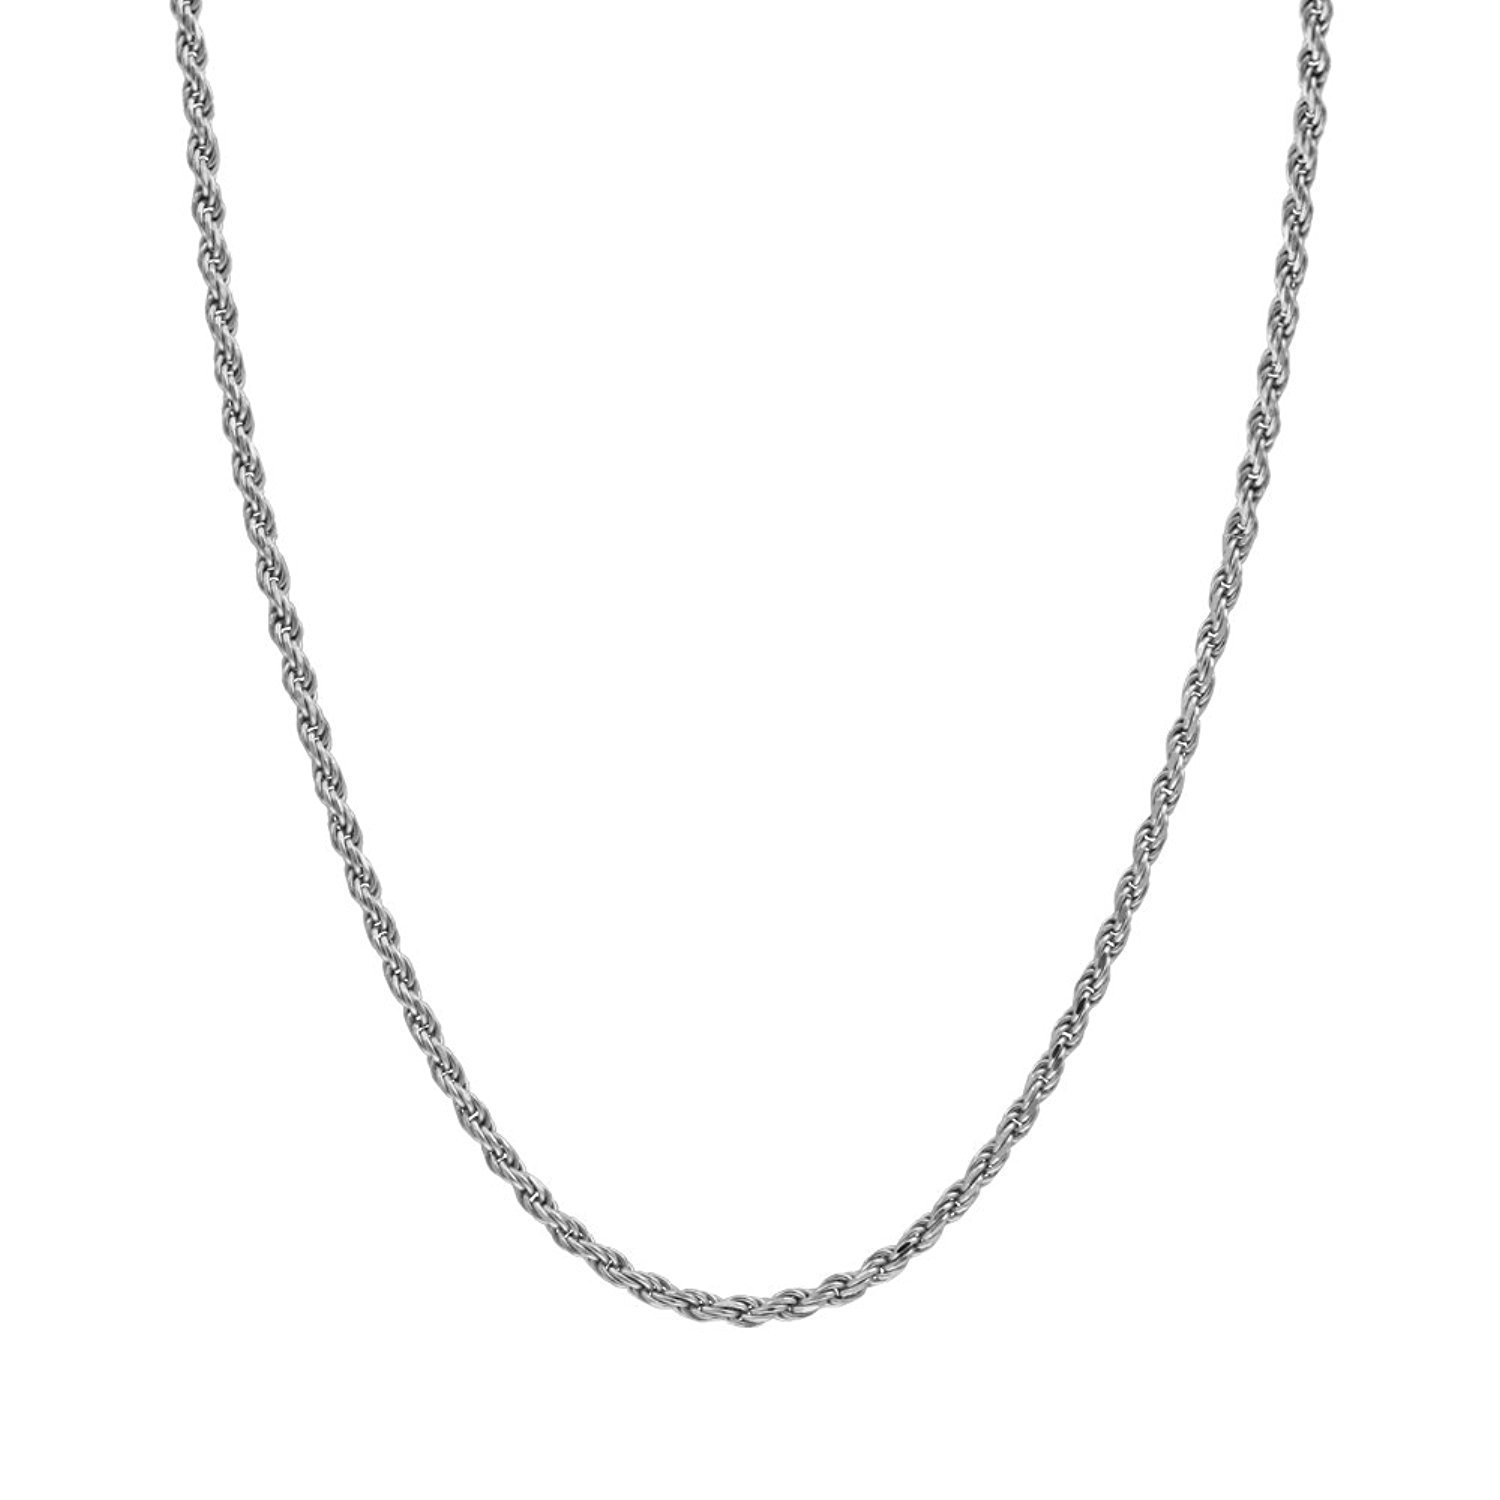 Dubai Collections 14K Rope Chain Necklace Men Women Strong w/Pendant White Gold 2mm Solid Lobster Clasp (18.00)